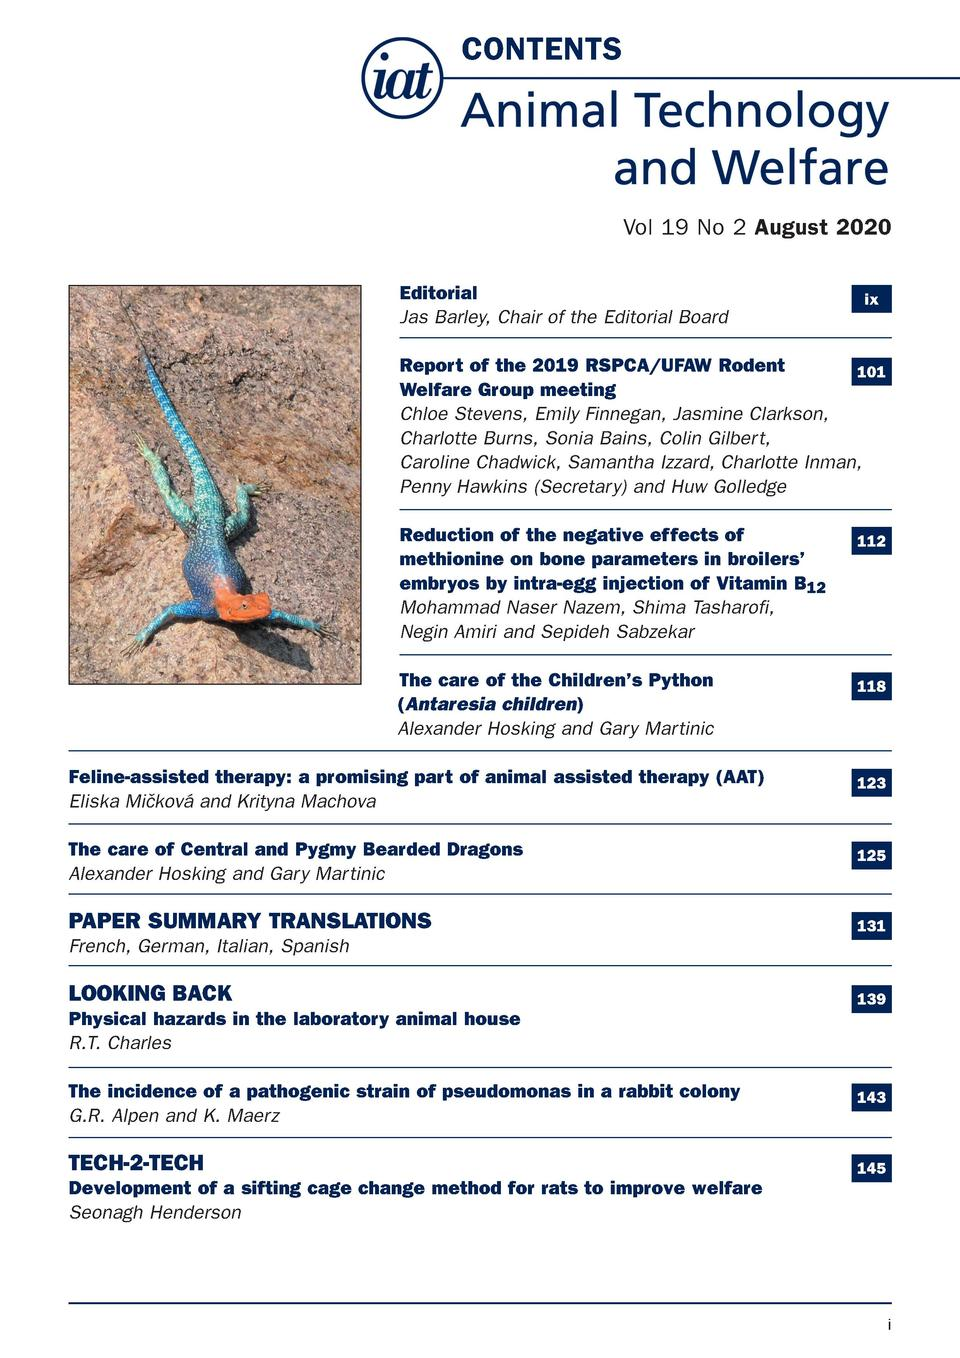 CONTENTS  August 2020  Animal Technology and Welfare  Vol 19 No 2 August 2020 Editorial Jas Barley, Chair of the Editorial...